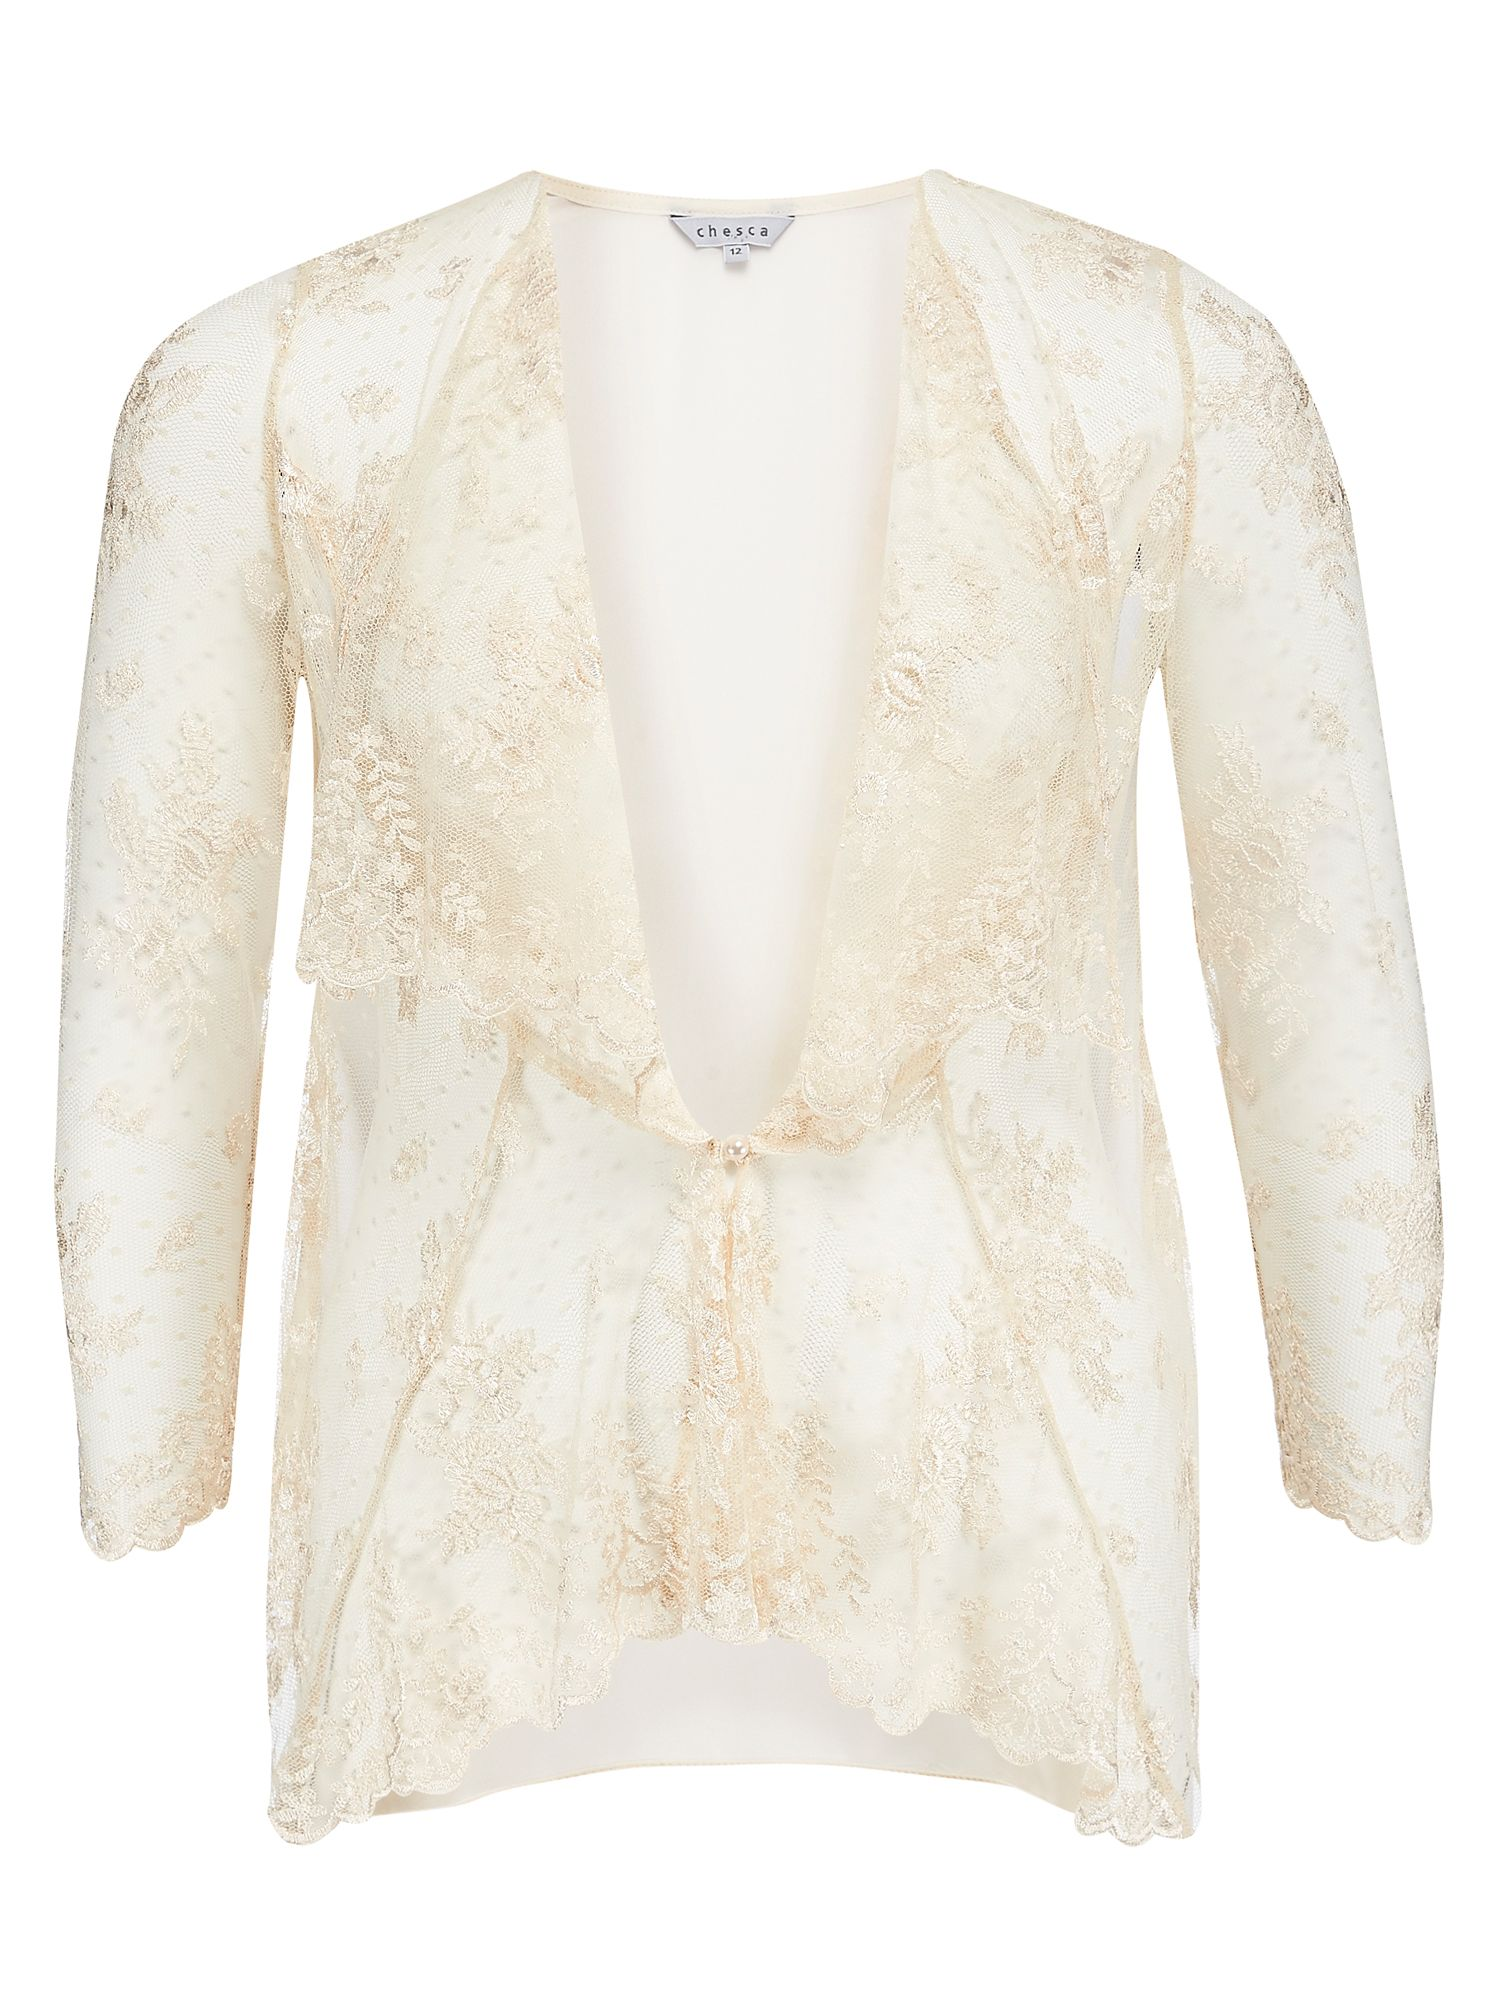 Chesca Scallopped Lace Coverup $105.00 AT vintagedancer.com